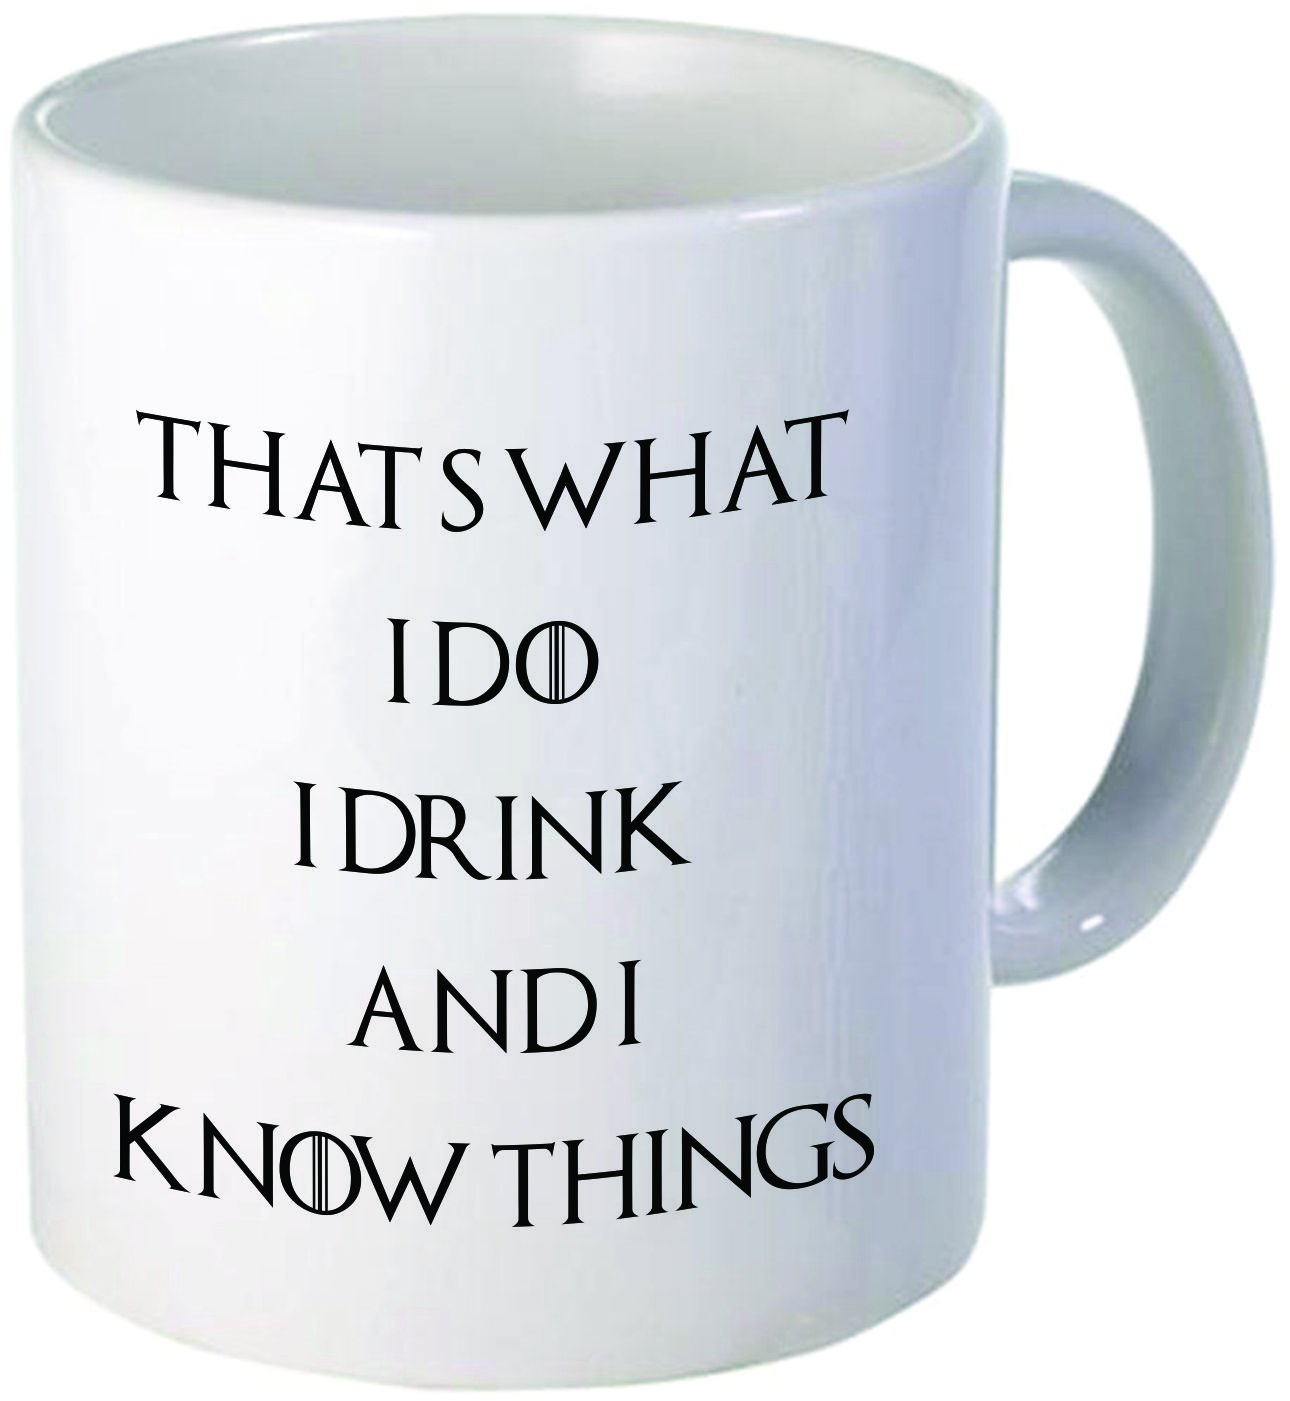 A Mug To Keep That's What I Do, I Drink and I Know Things Coffee Mugs Inspirational Gifts and Sarcasm, 11 oz.